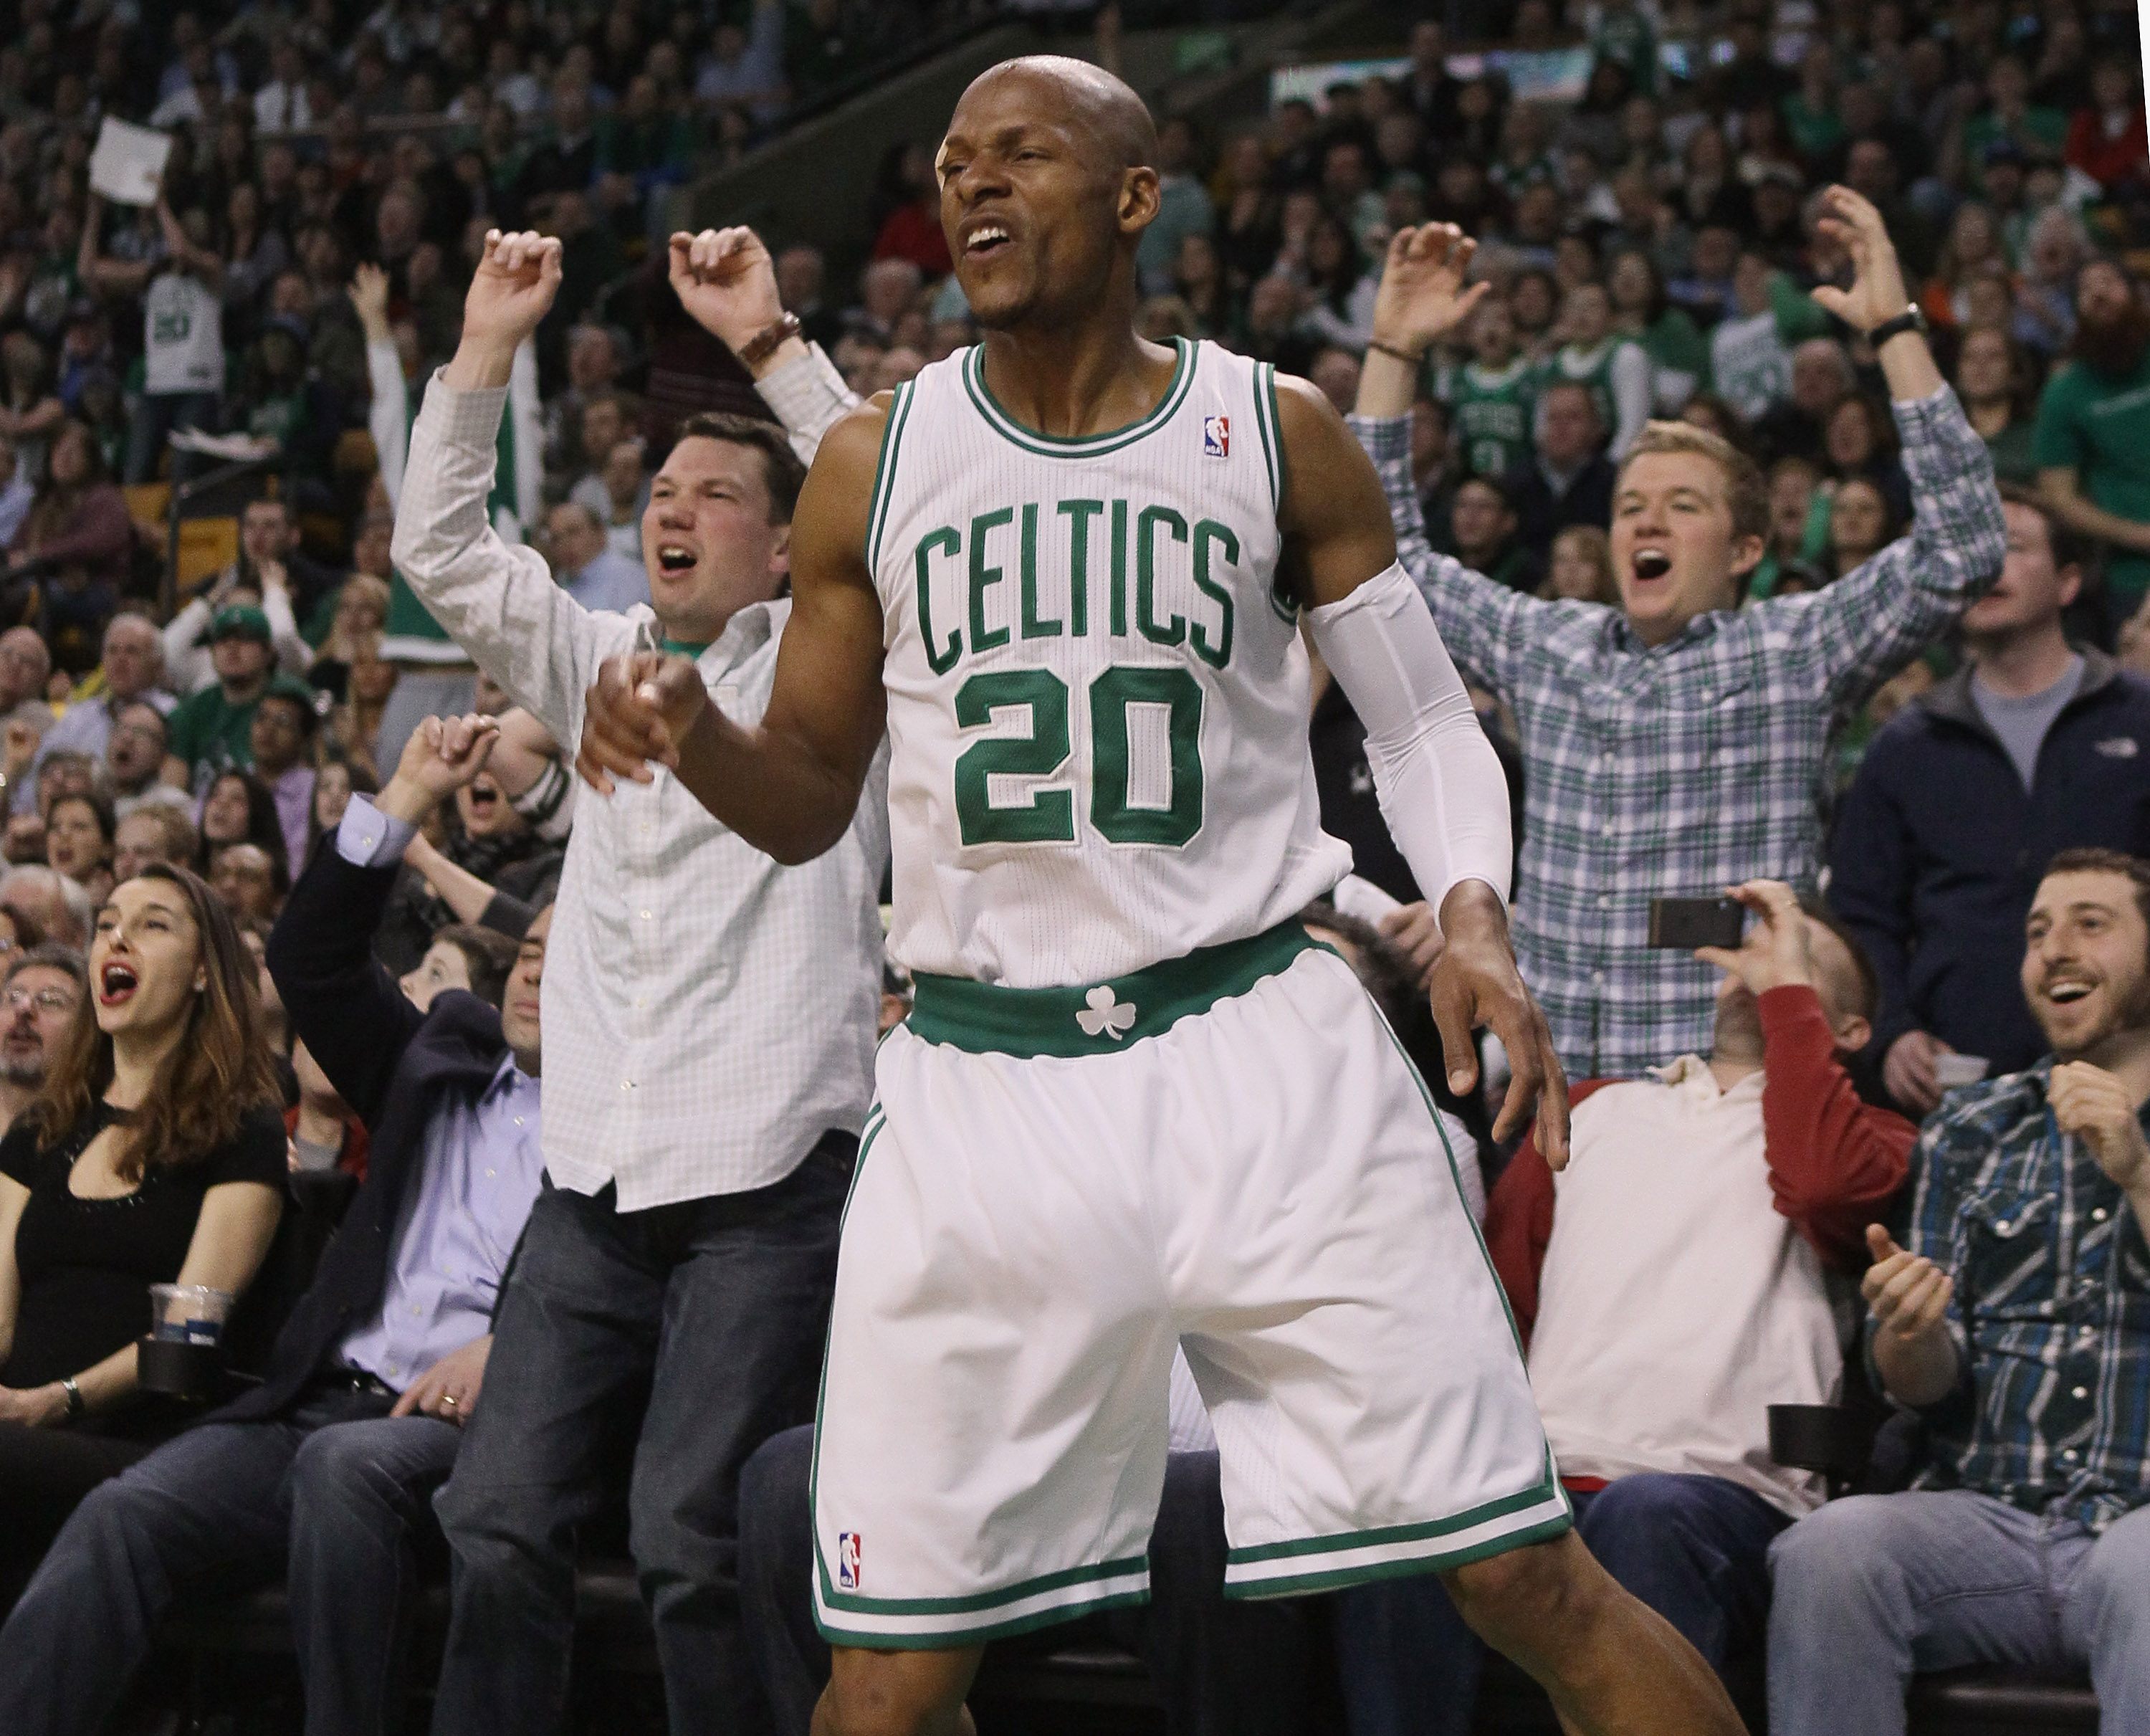 BOSTON, MA - MARCH 23:  Ray Allen #20 of the Boston Celtics and the fans react after he misses a three point shot in the fourth quarter against the Memphis Grizzlies on March 23, 2011 at the TD Garden in Boston, Massachusetts.  The Memphis Grizzlies defea